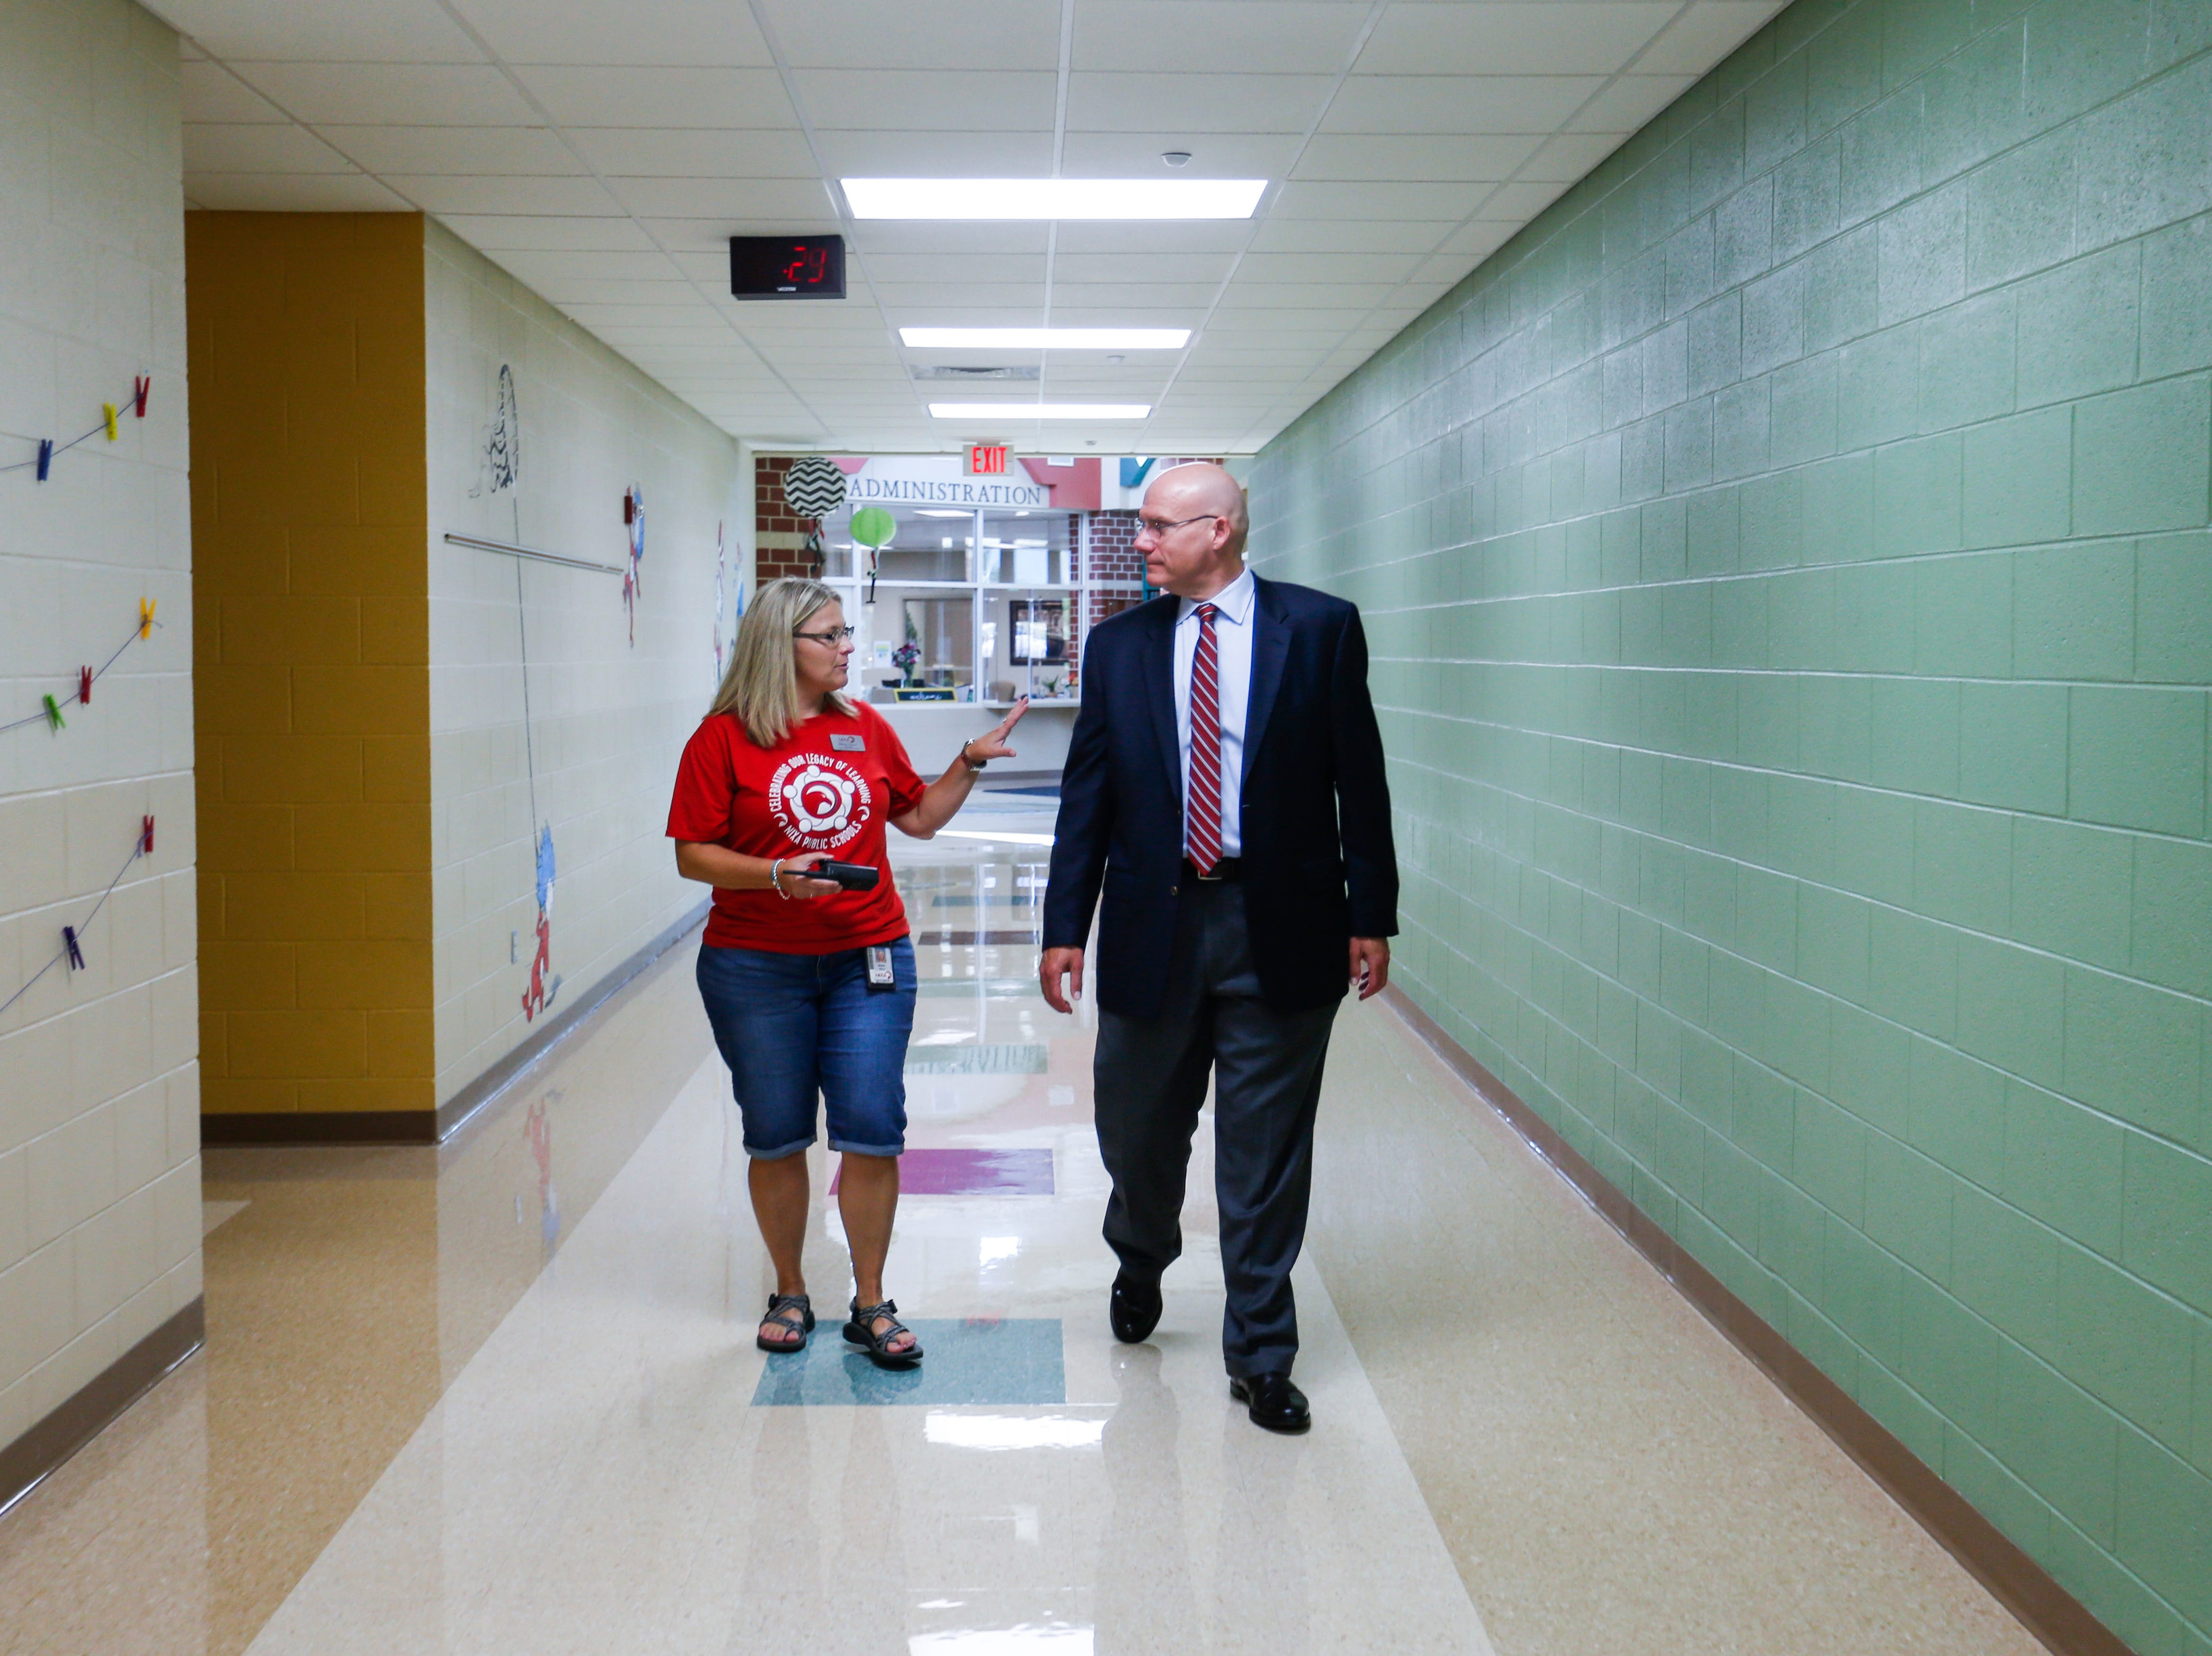 Nixa Superintendent Gearl Loden gets a tour of High Pointe Elementary School from Principal Marilyn Hanna on Thursday, August 9, 2018.